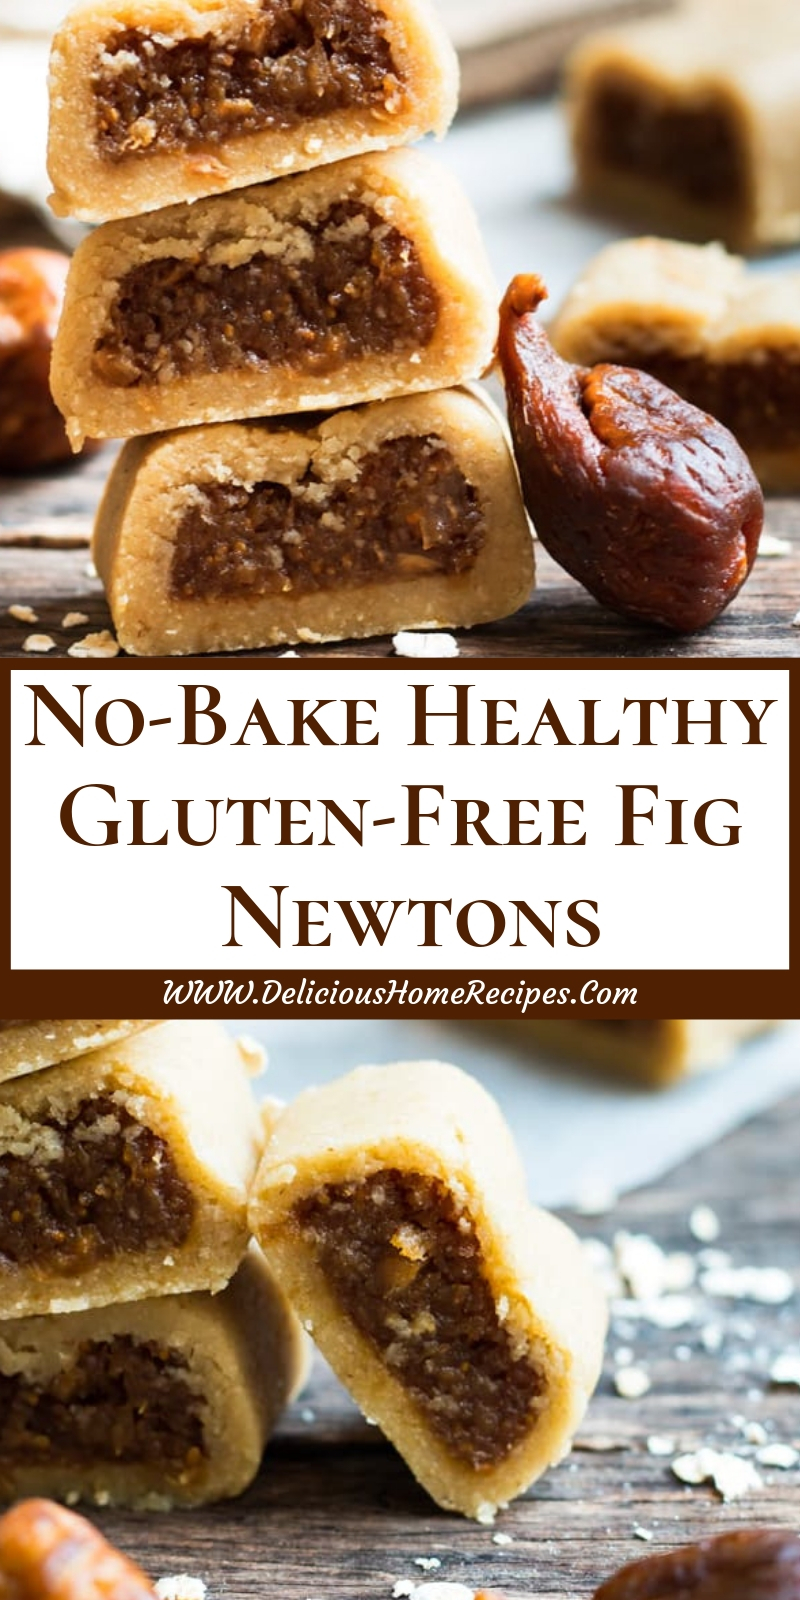 No-Bake Healthy Gluten-Free Fig Newtons